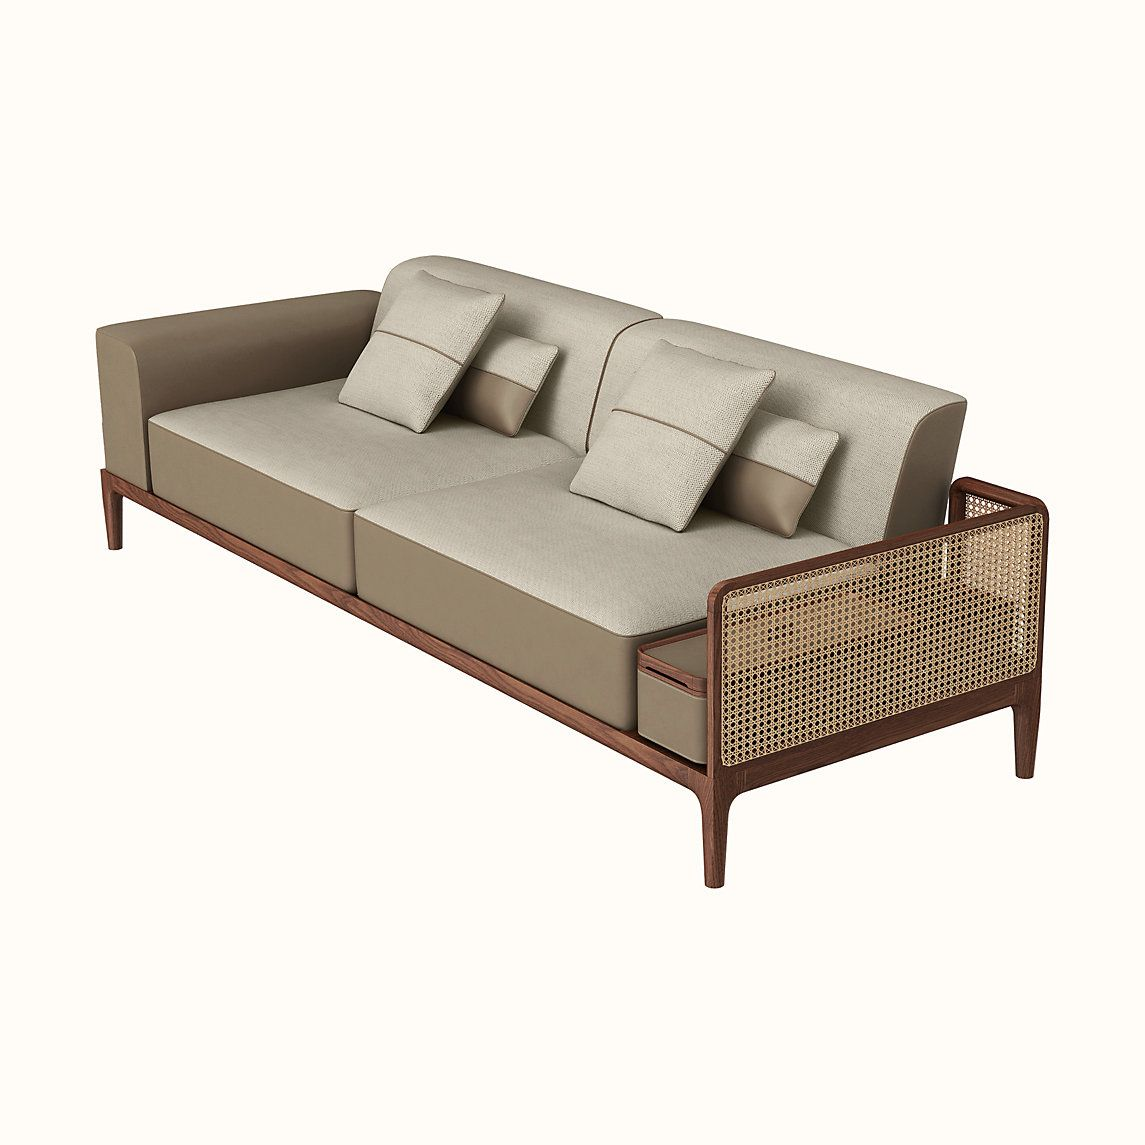 Sofa Sellier 2 Seater